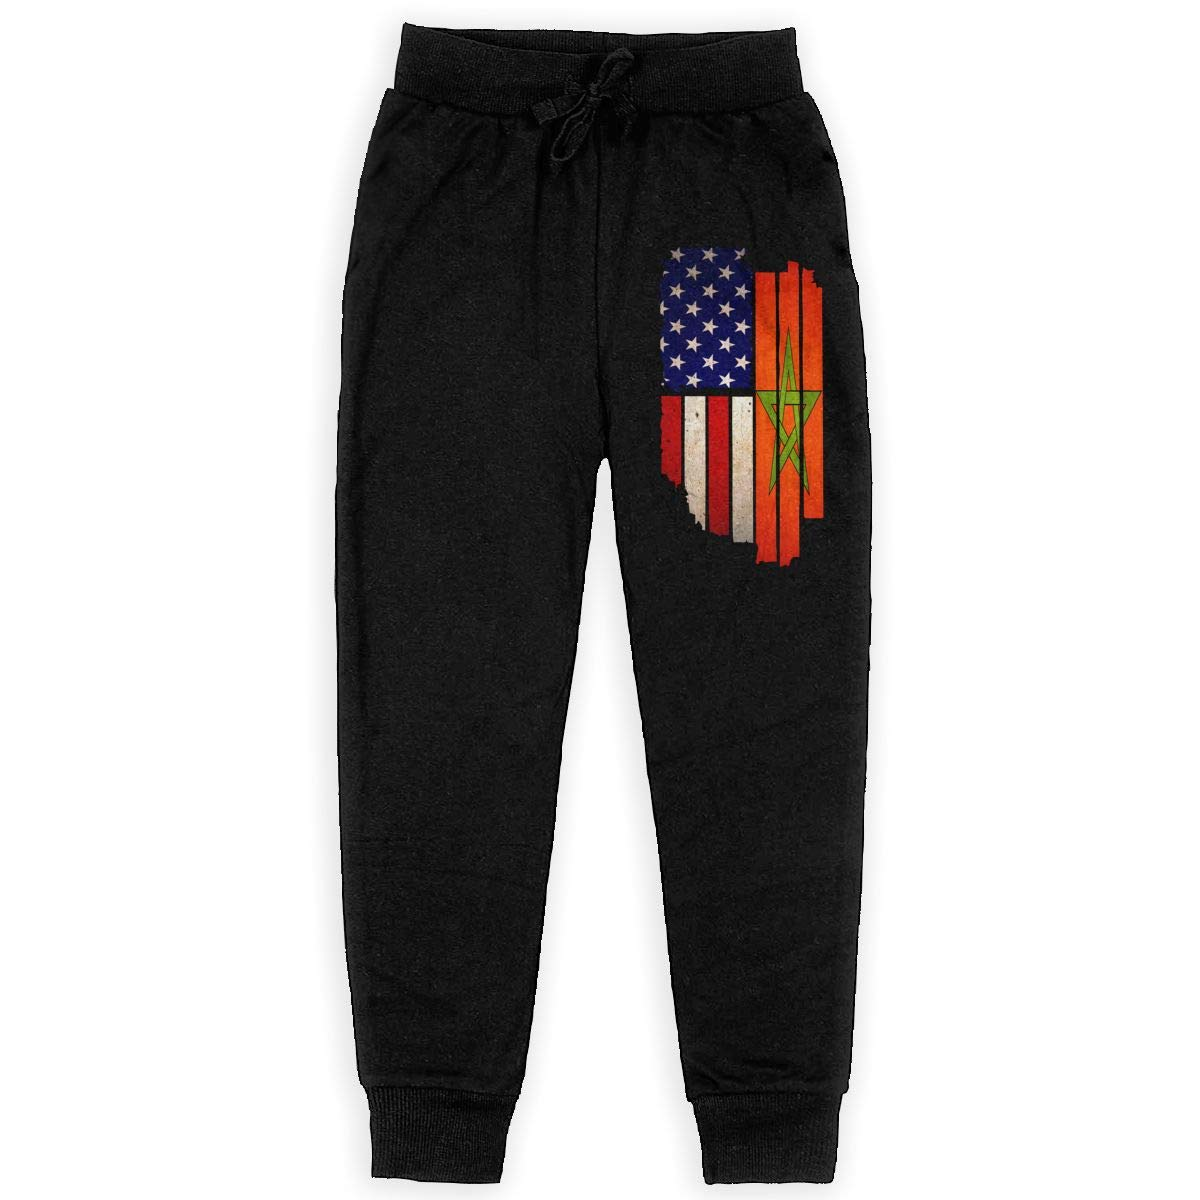 Boys Athletic Pants for Teen Girls Vintage USA Morocco Flag Soft//Cozy Sweatpants